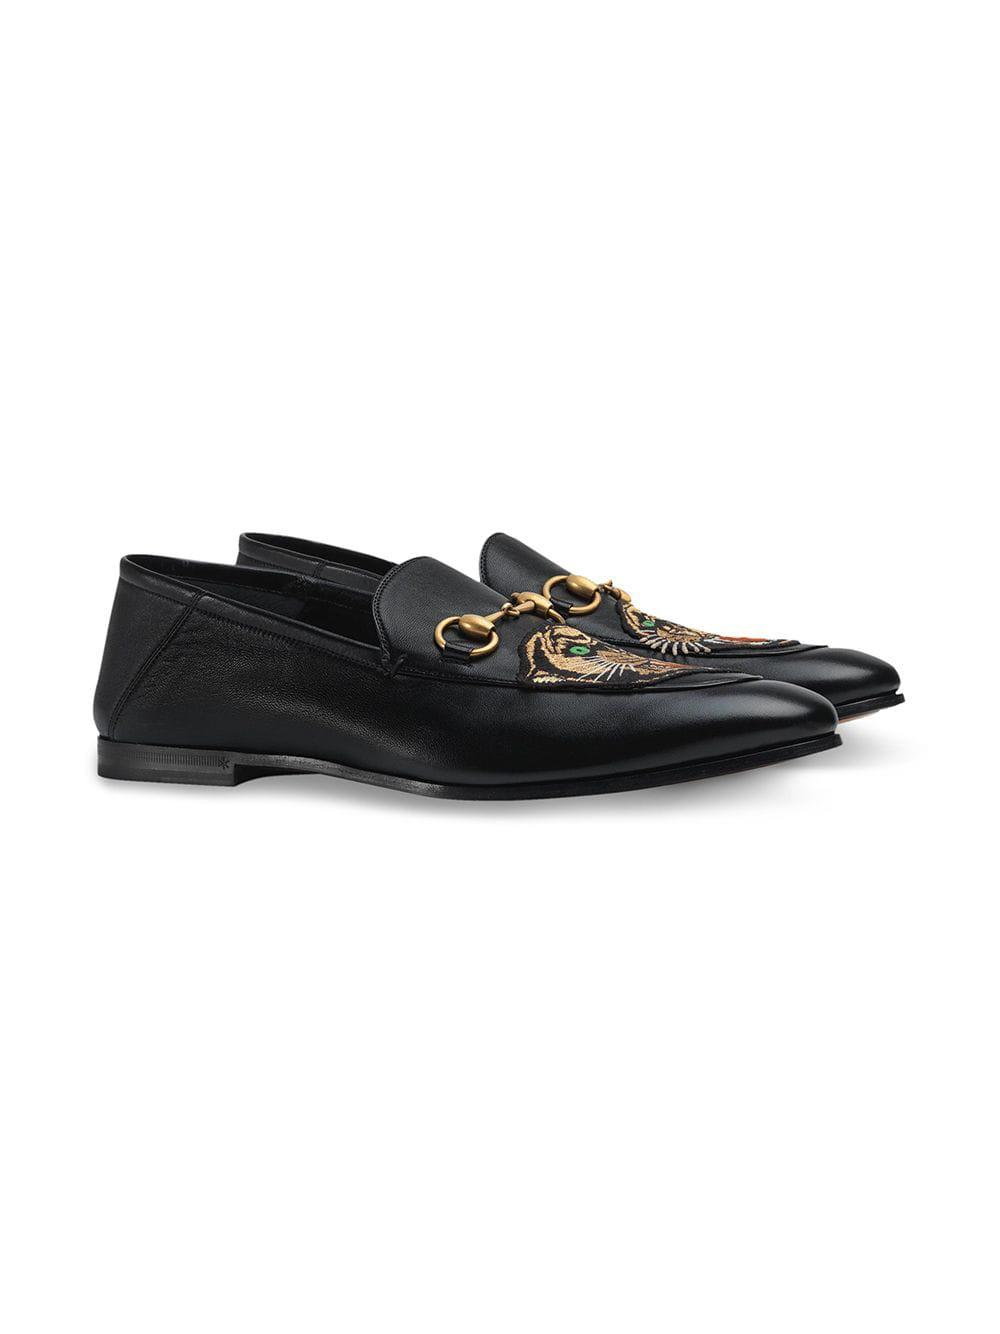 8b84527edd2 Lyst - Gucci Leather Horsebit Loafer With Panther in Black for Men - Save 5%